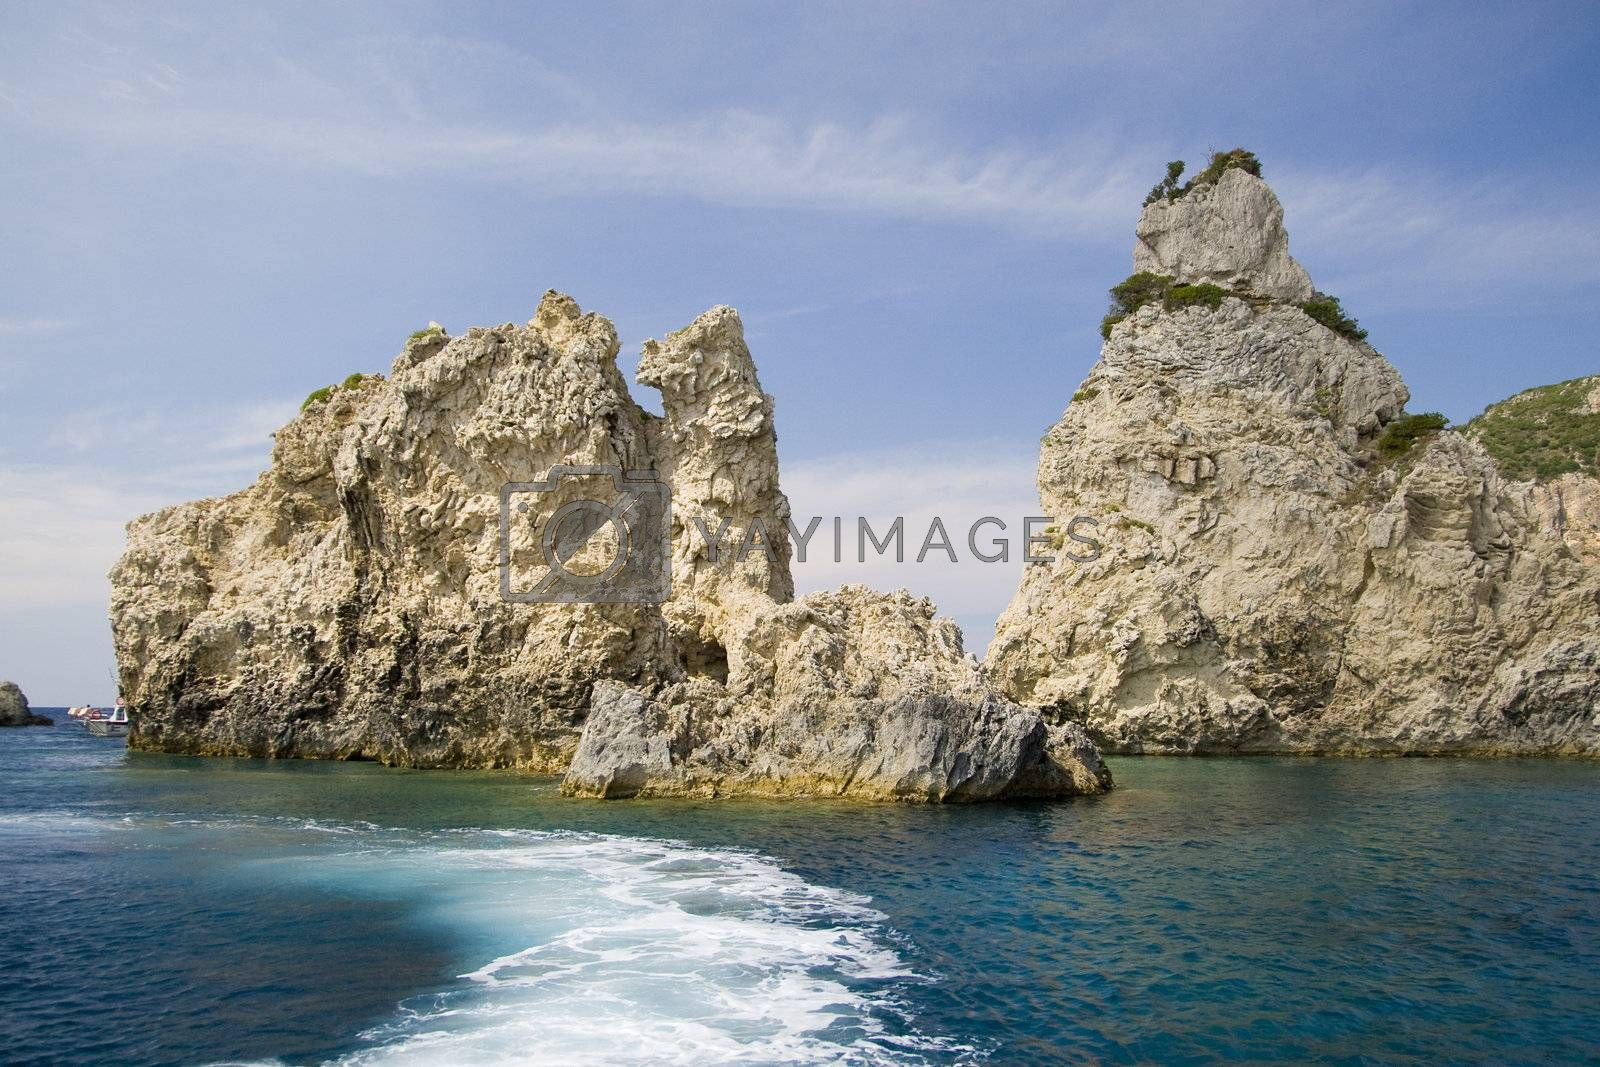 Corfu Island - View from the boat